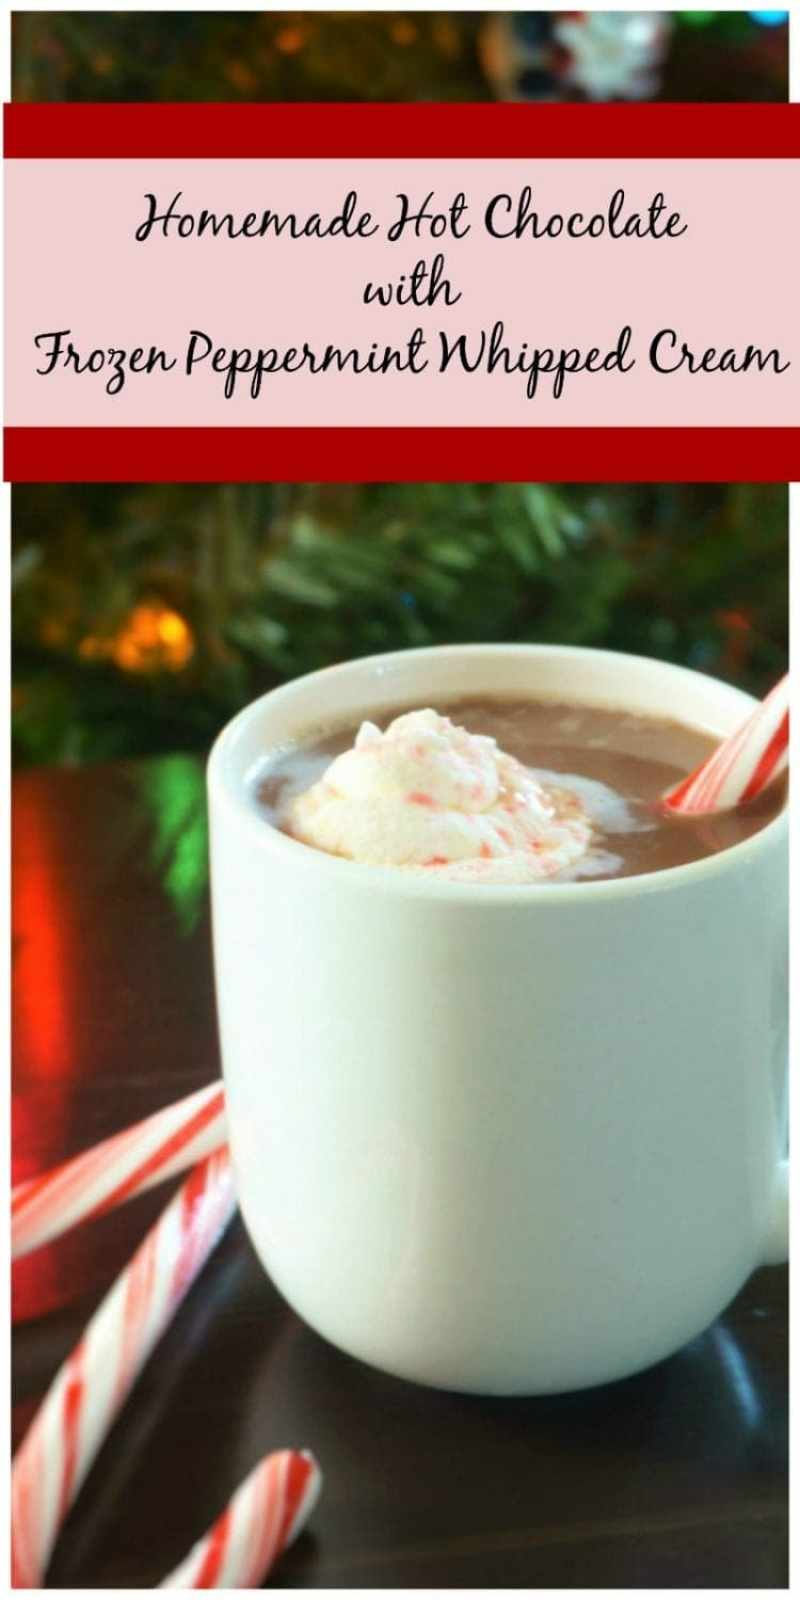 Homemade Hot Chocolate with Frozen Peppermint Whipped Cream: Homemade hot chocolate that will blow your mind. Simple, clean ingredients make this drink rich and velvety and a sweet frozen surprise adds a kick of peppermint flavor and a bit of magic.